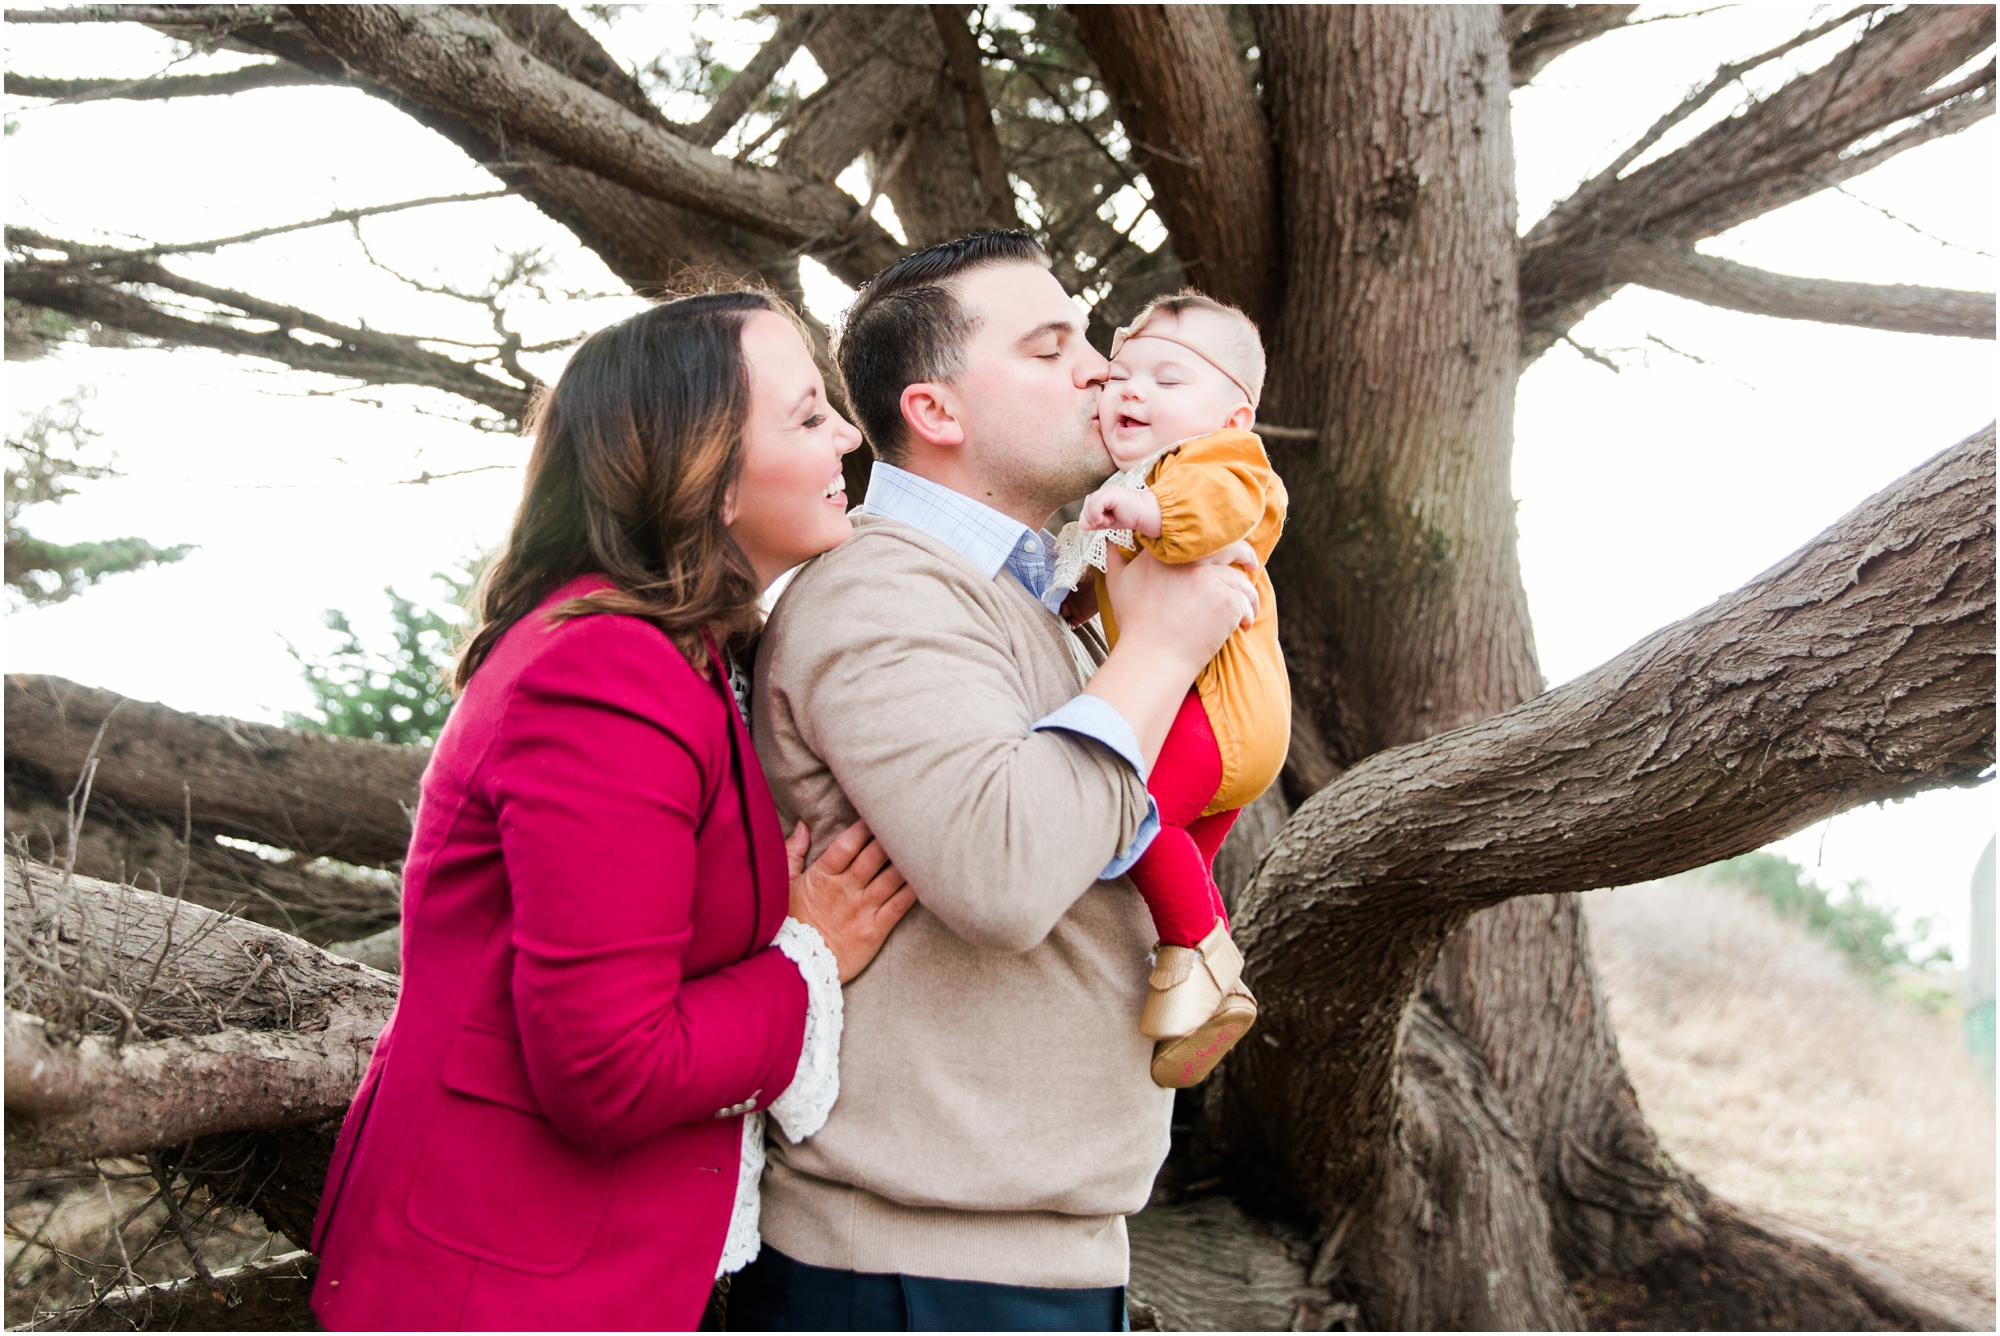 Half Moon Bay family photos by Briana Calderon Photography_0585.jpg